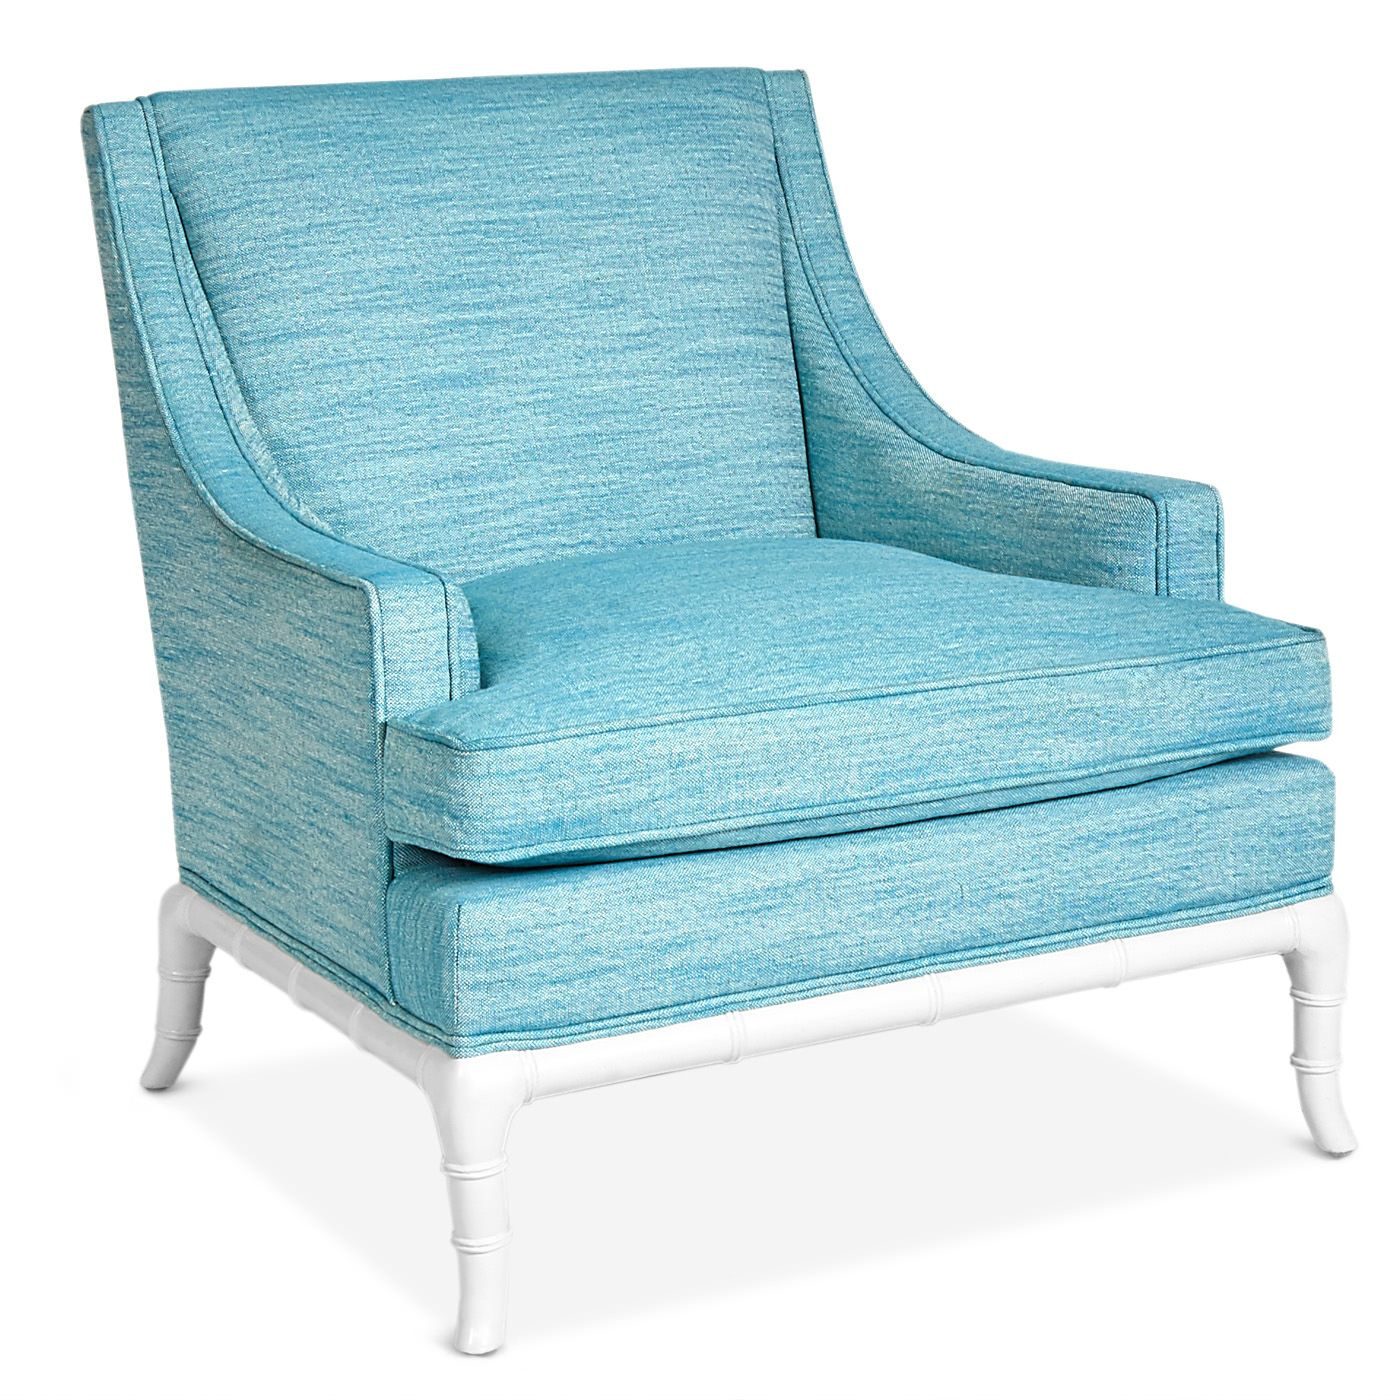 This Chic Teal Lounge Chair Is From Jonathan Adler's Chippendale With Regard To Alder Grande Ii Sofa Chairs (Image 20 of 20)